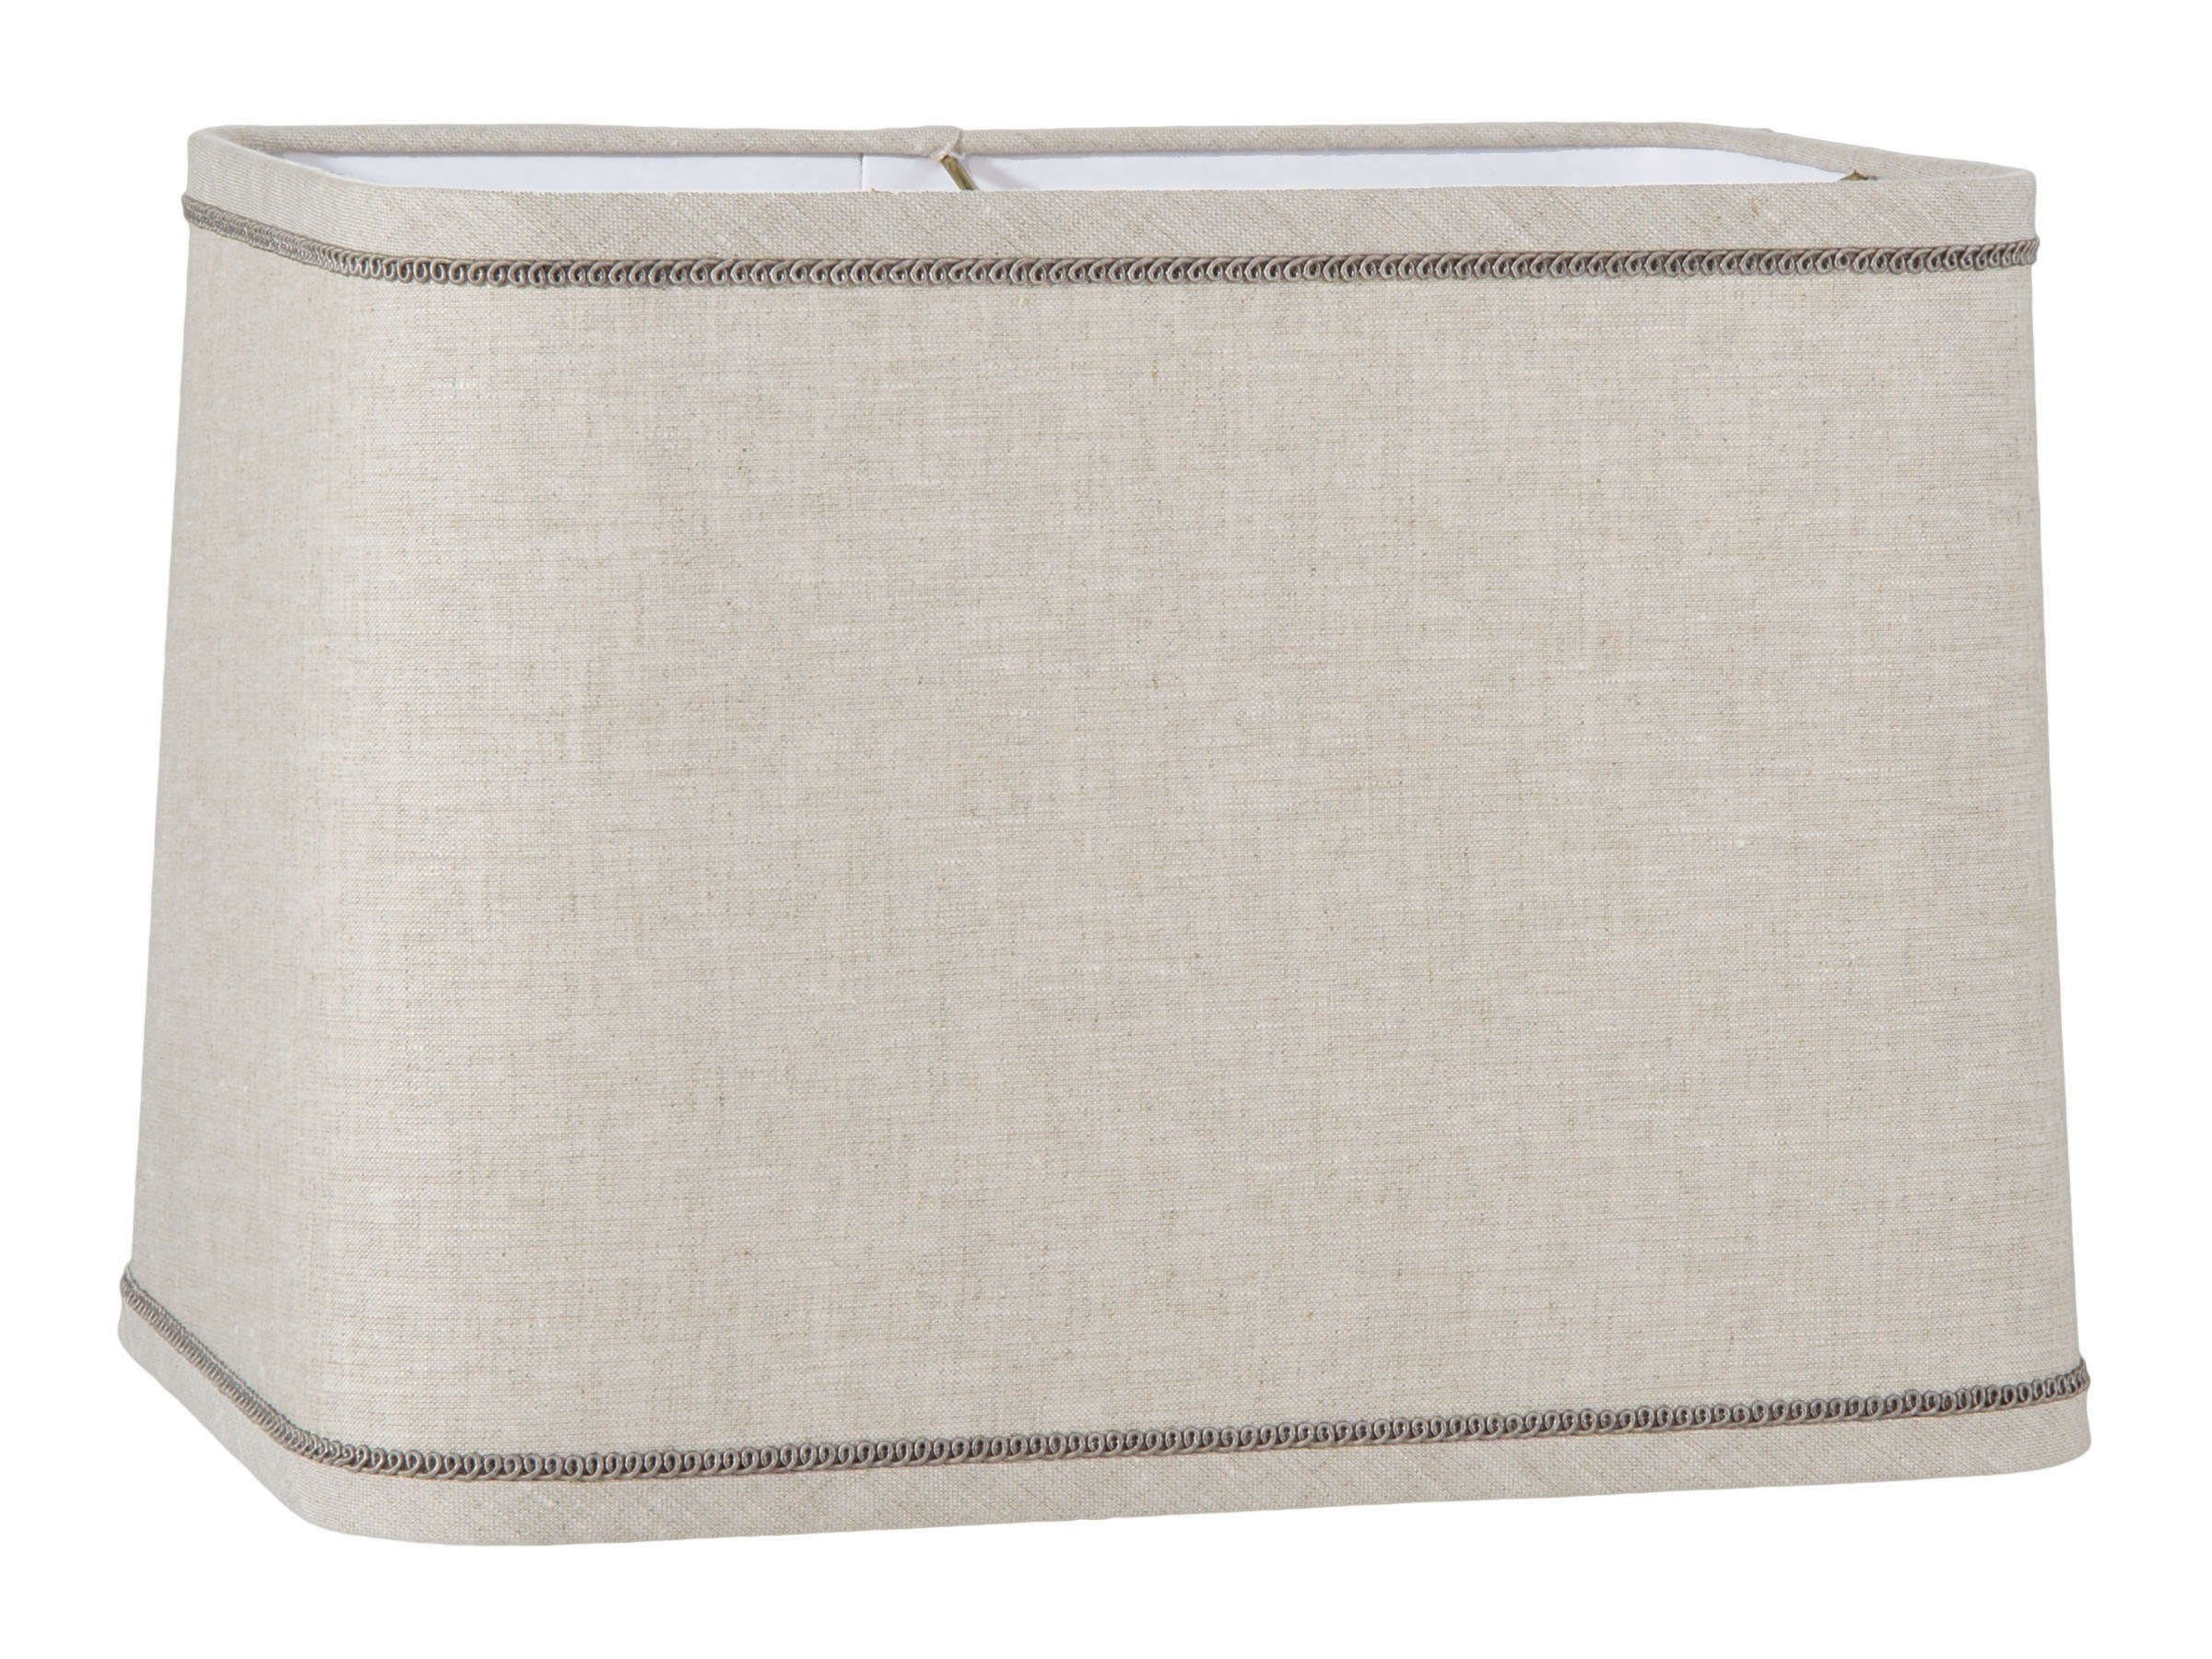 Natural Linen Round Corner Rectangle Lampshade 05648a B